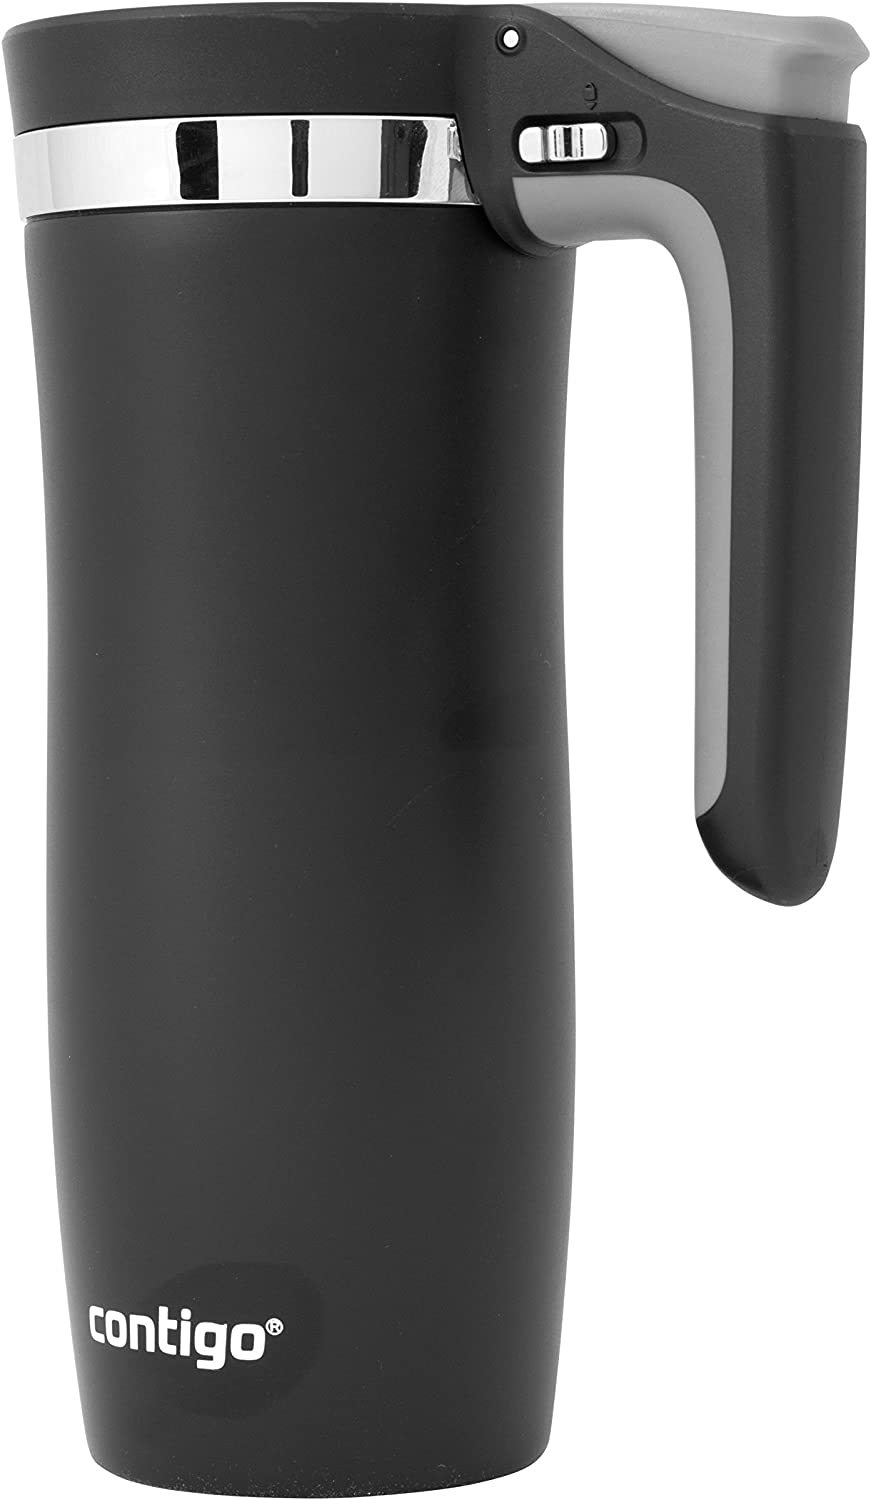 Contigo Handled AUTOSEAL Travel Mug Vacuum-Insulated Stainless Steel Easy-Clean Lid, 16 oz, Black